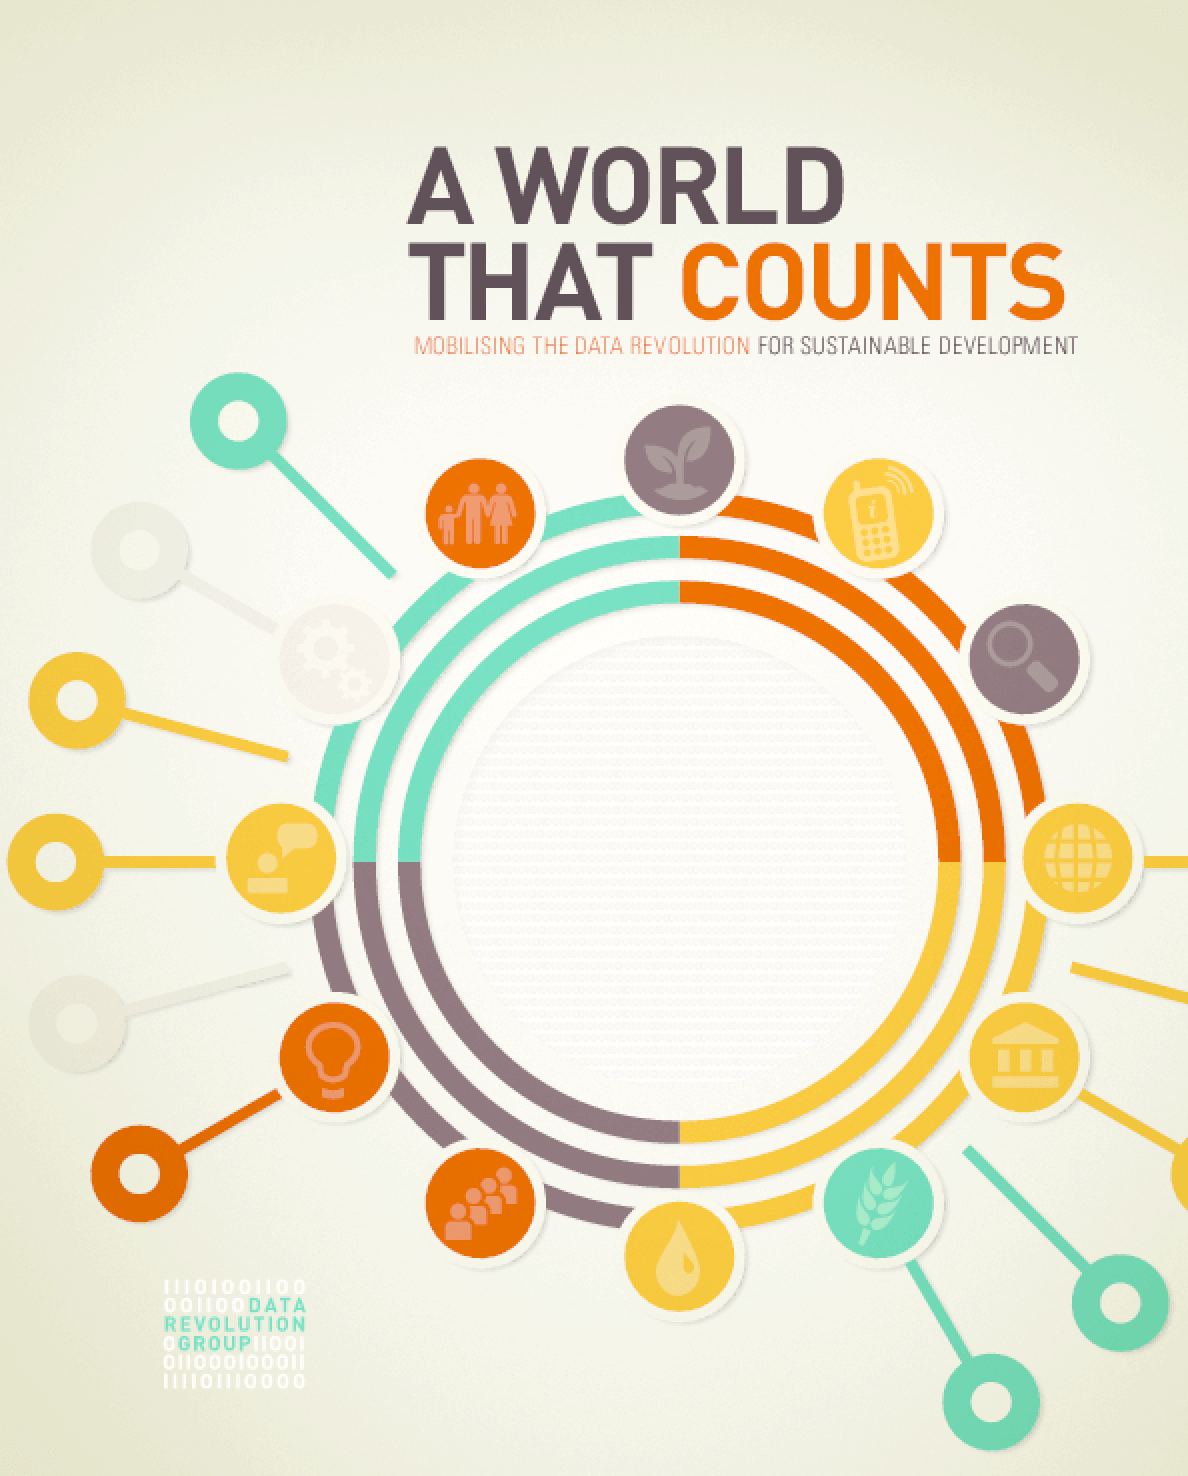 A World That Counts: Mobilising The Data Revolution For Sustainable Development